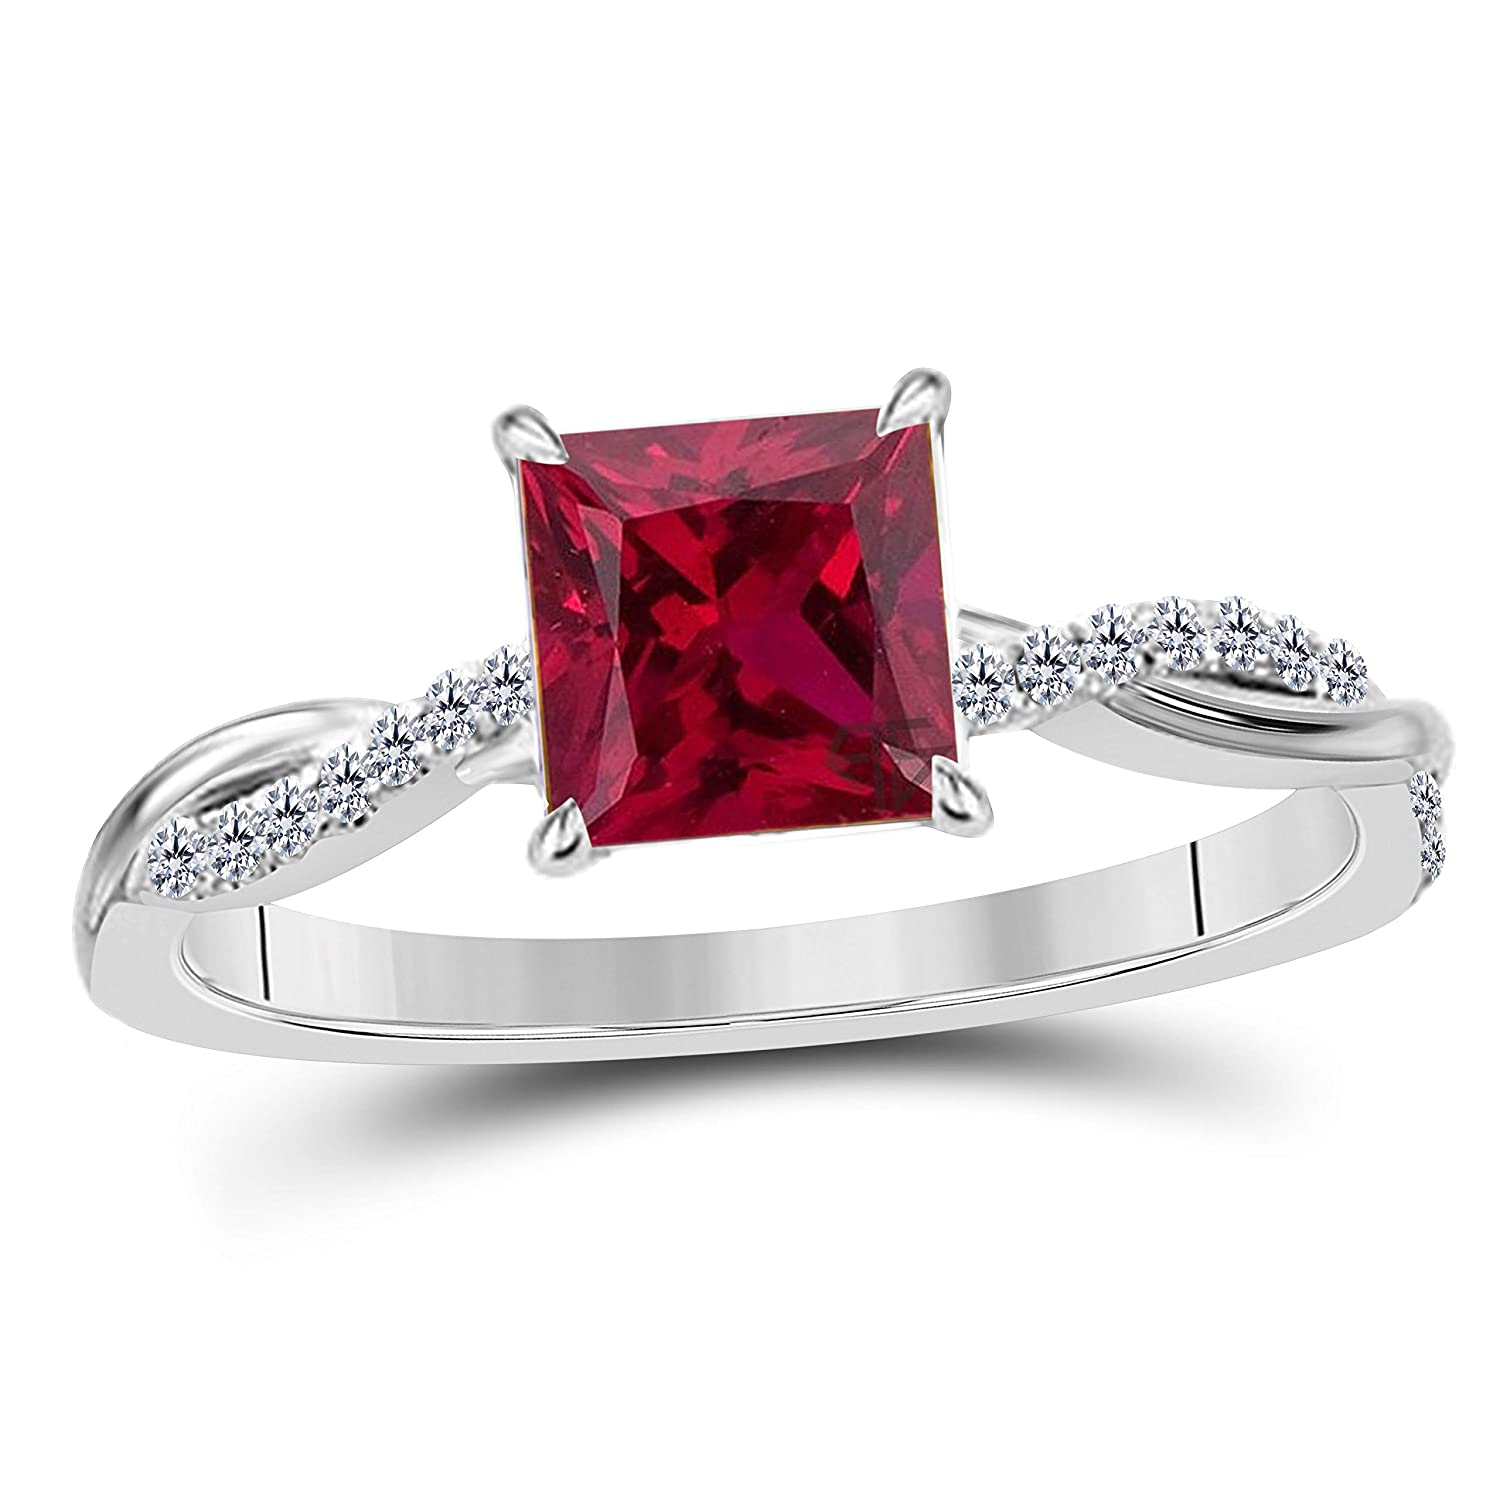 Jewelryhub 1.20 Ct Princess Cut Created Red Ruby 14K White Gold Finish Sterling Silver Swirl Style Engagement Ring Womens in